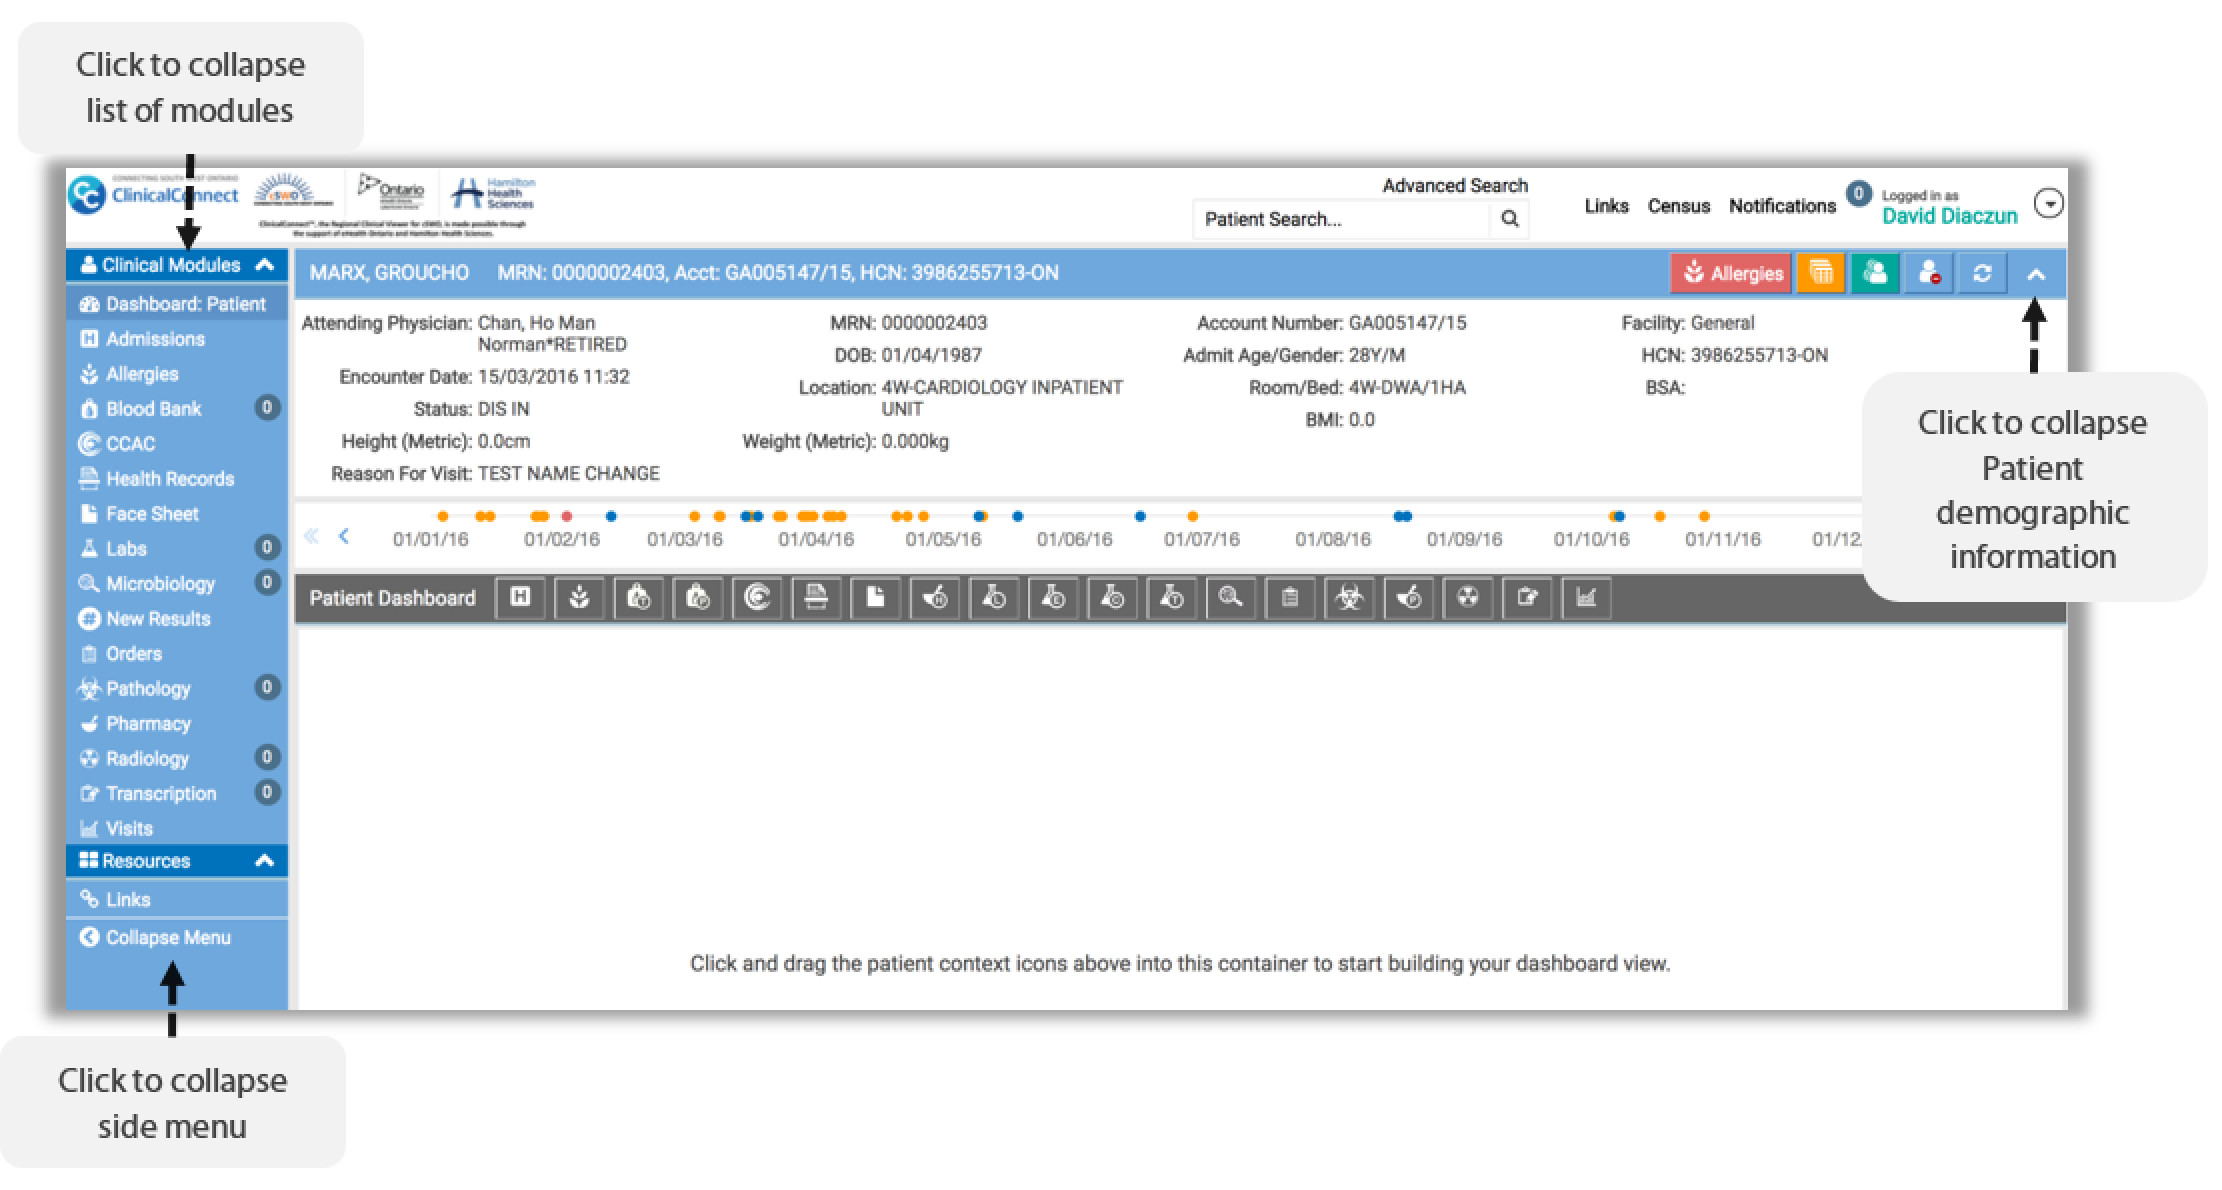 Image of the expand and collapse feature on the list of modules, side menu and patient demographic information